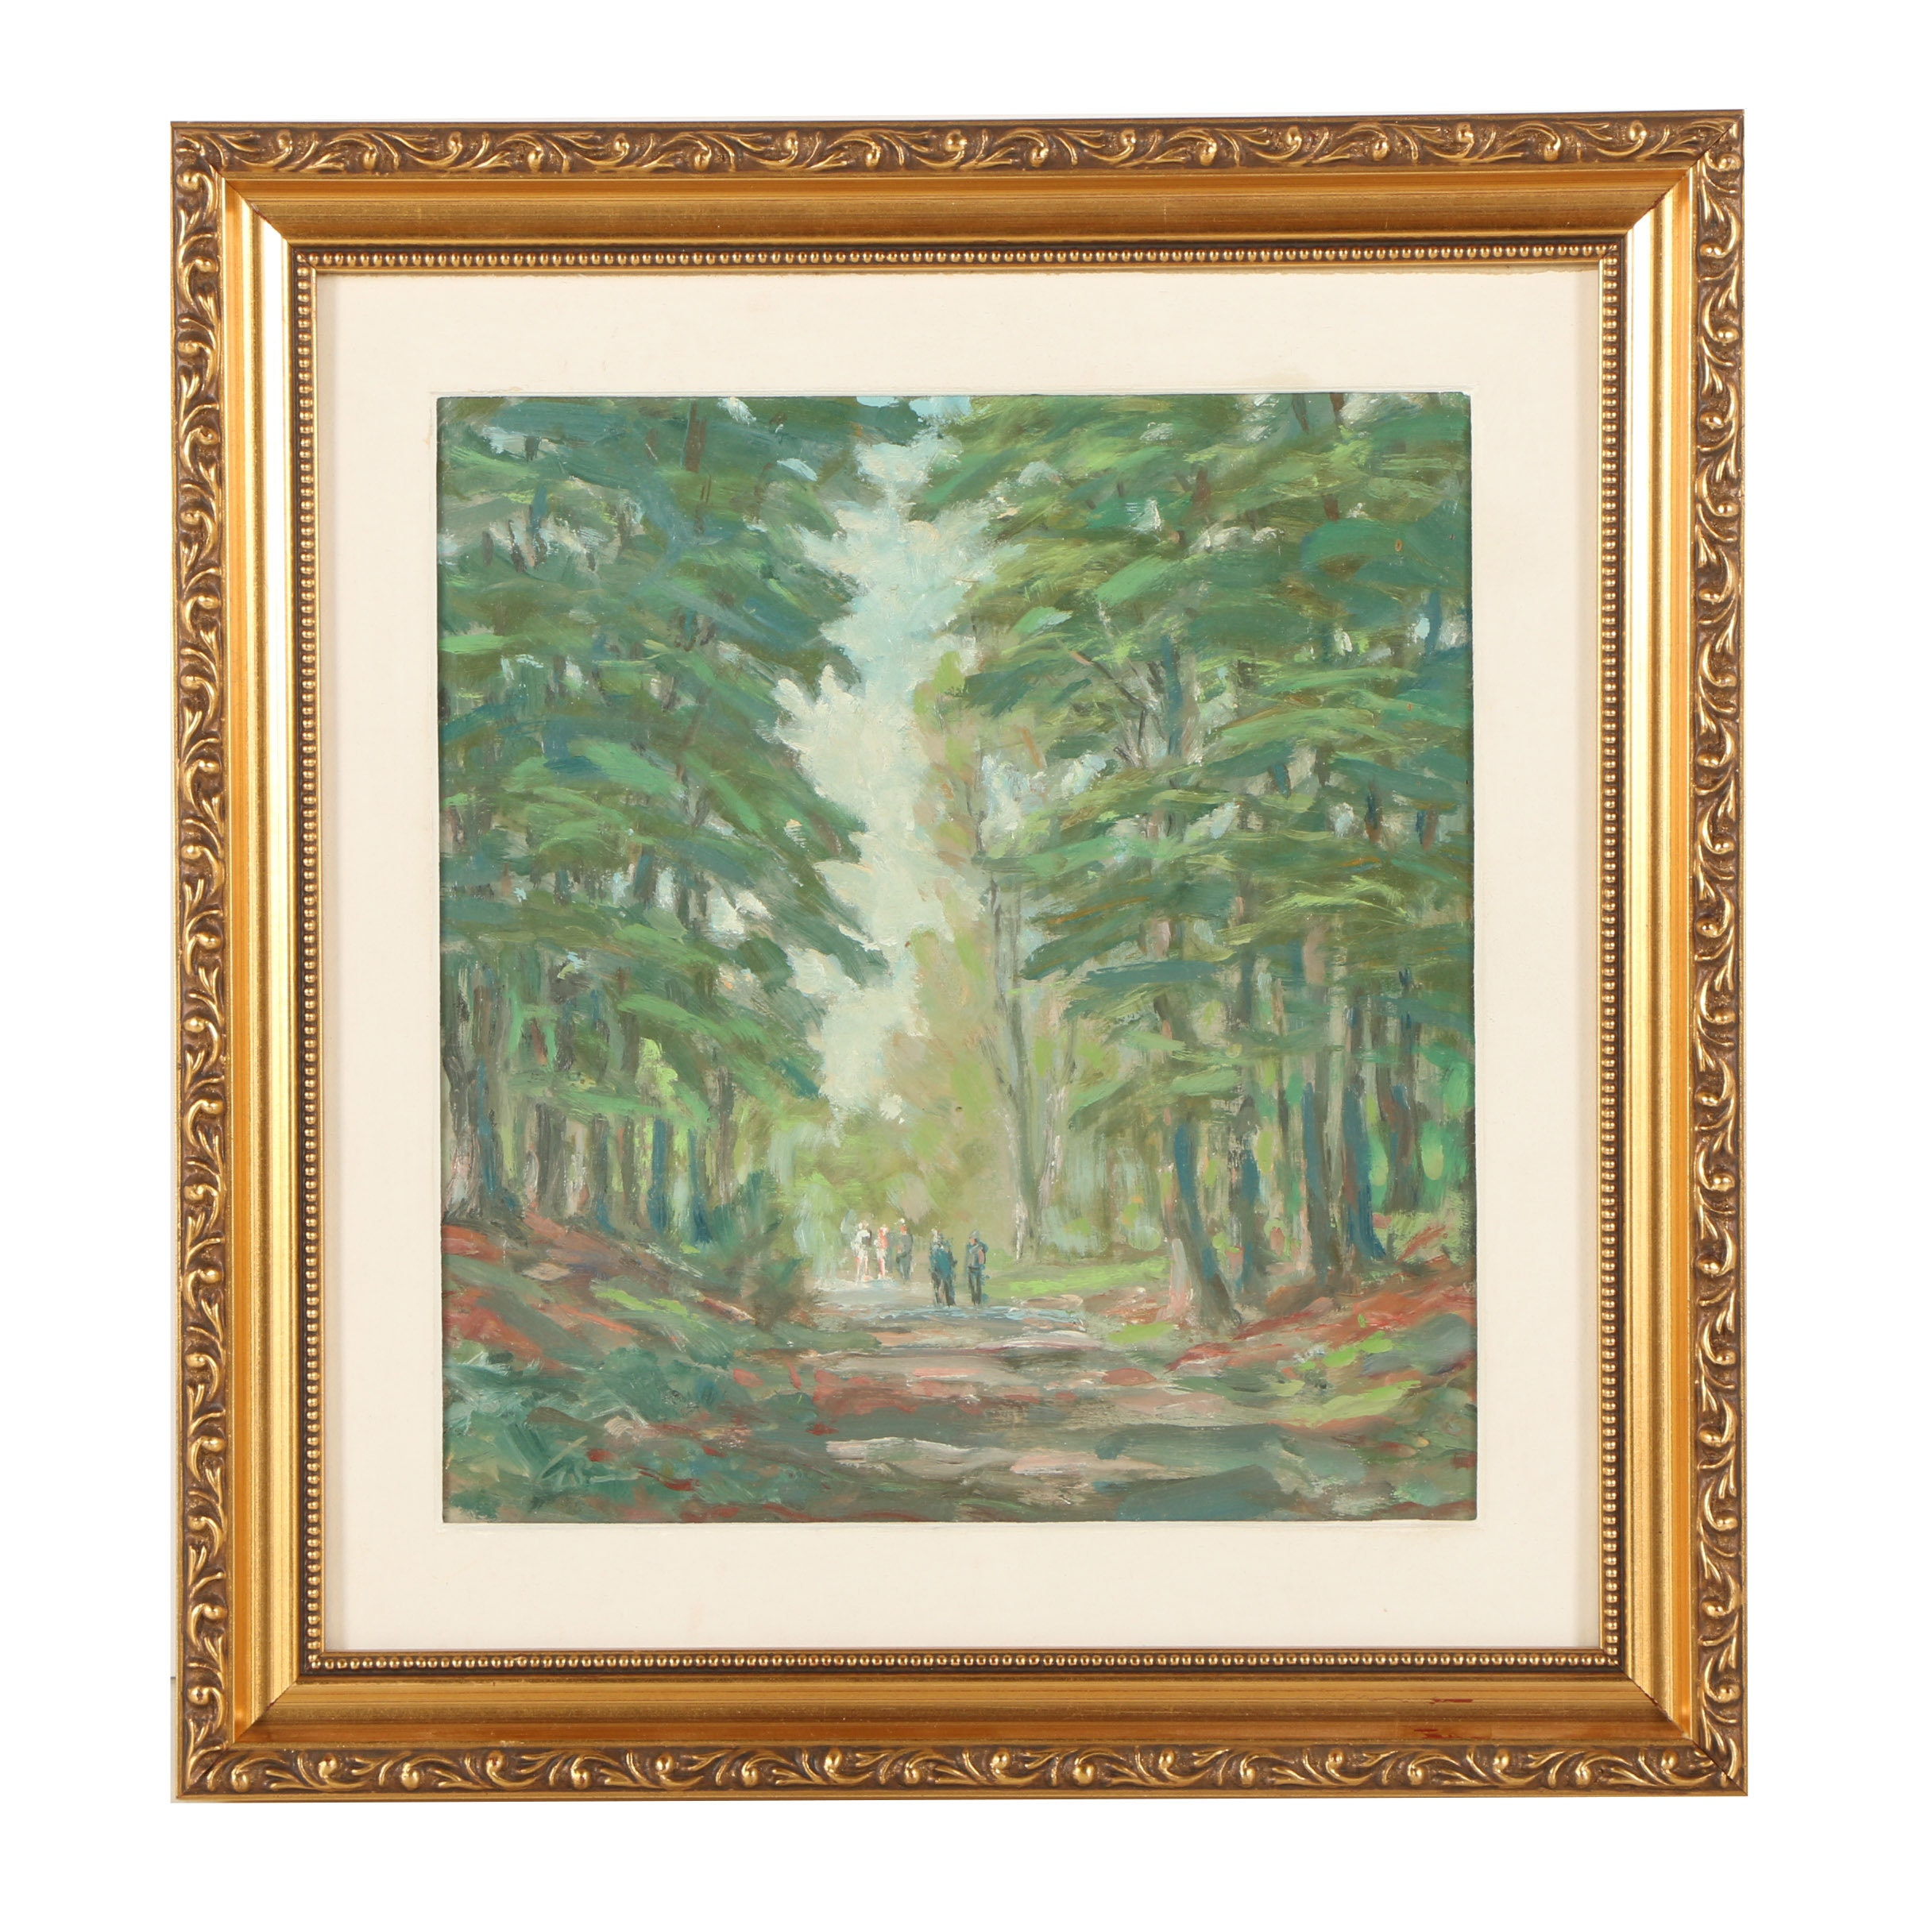 Oil Painting of Figures Walking in the Woods